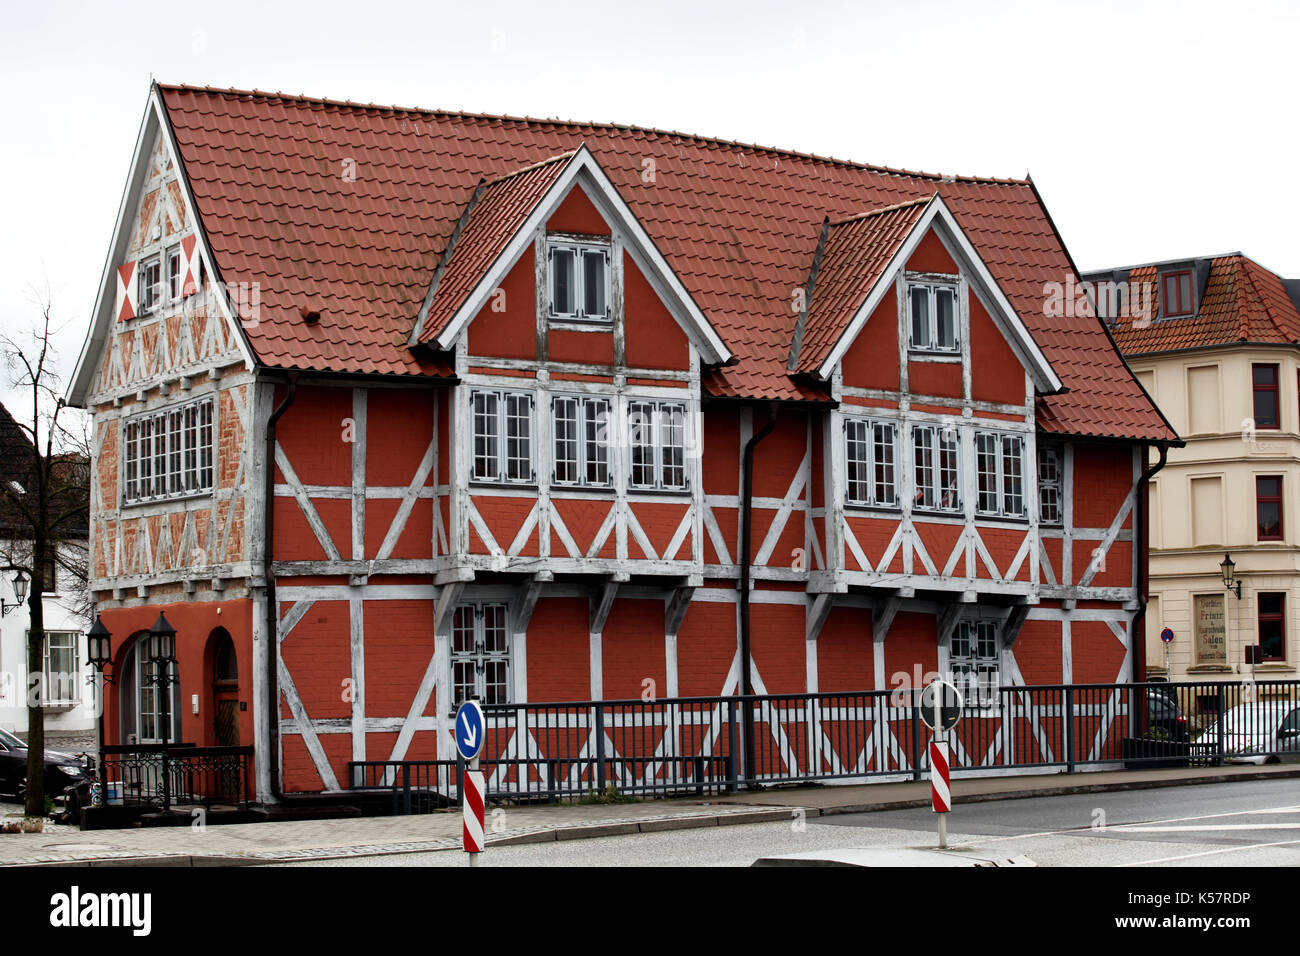 Red wooden Fachwerk house in the old Wismar - Stock Image